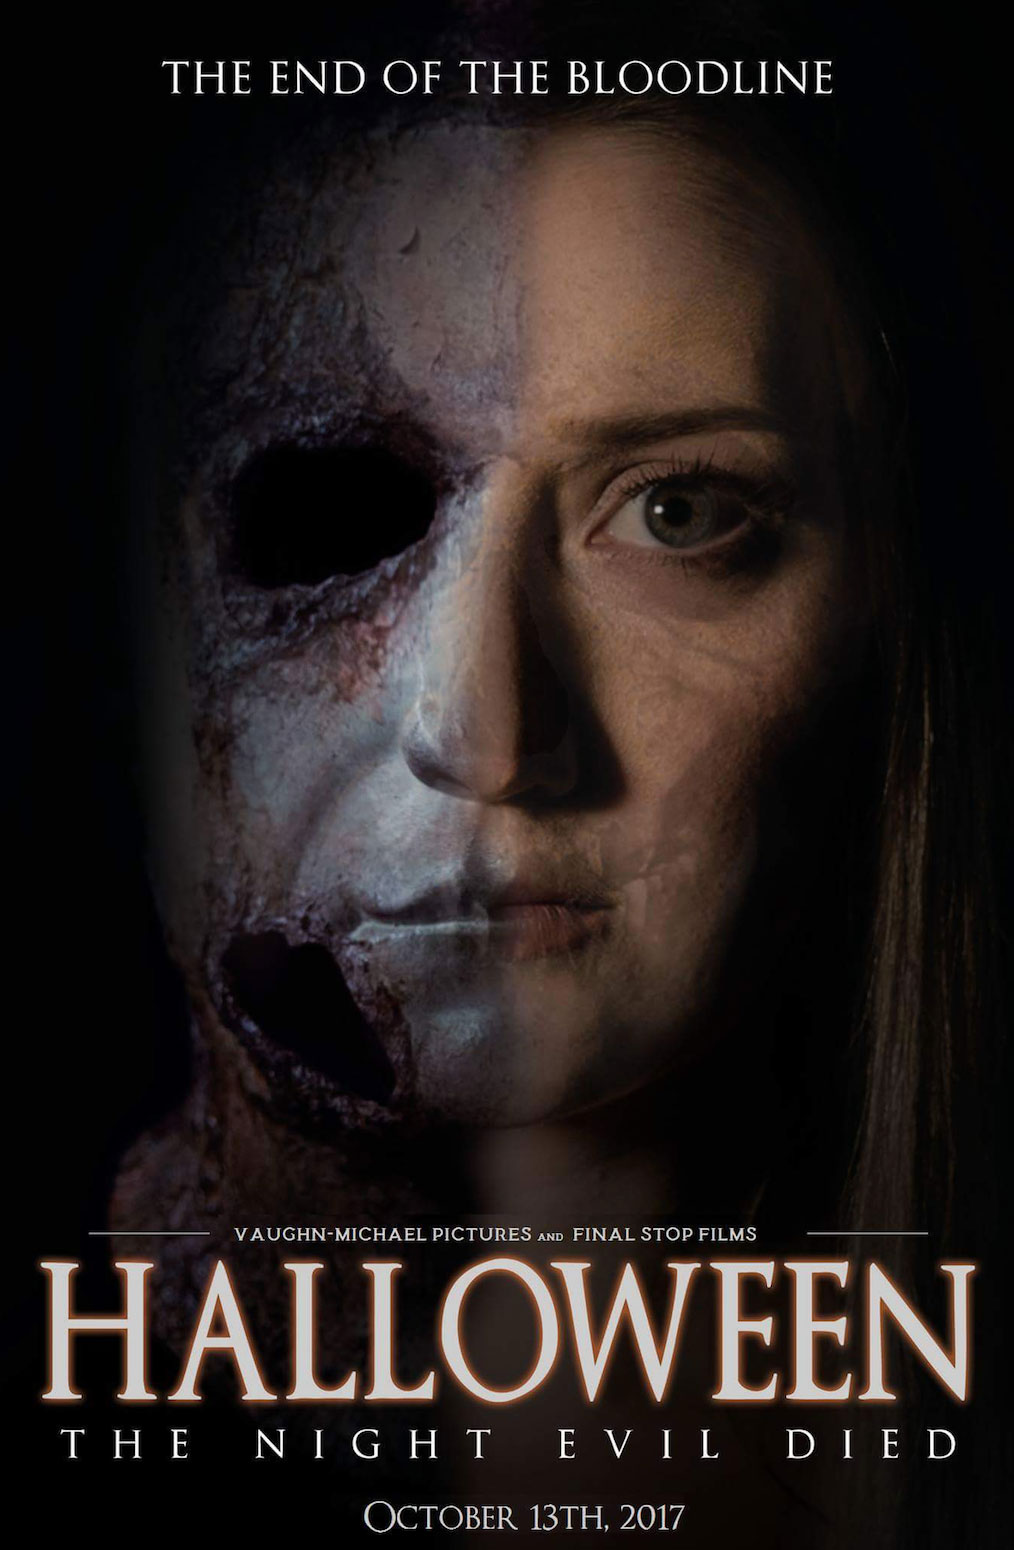 Movie Fan Magazines: Laurie's Theme / Emma's Theme From Fan Film HALLOWEEN: THE